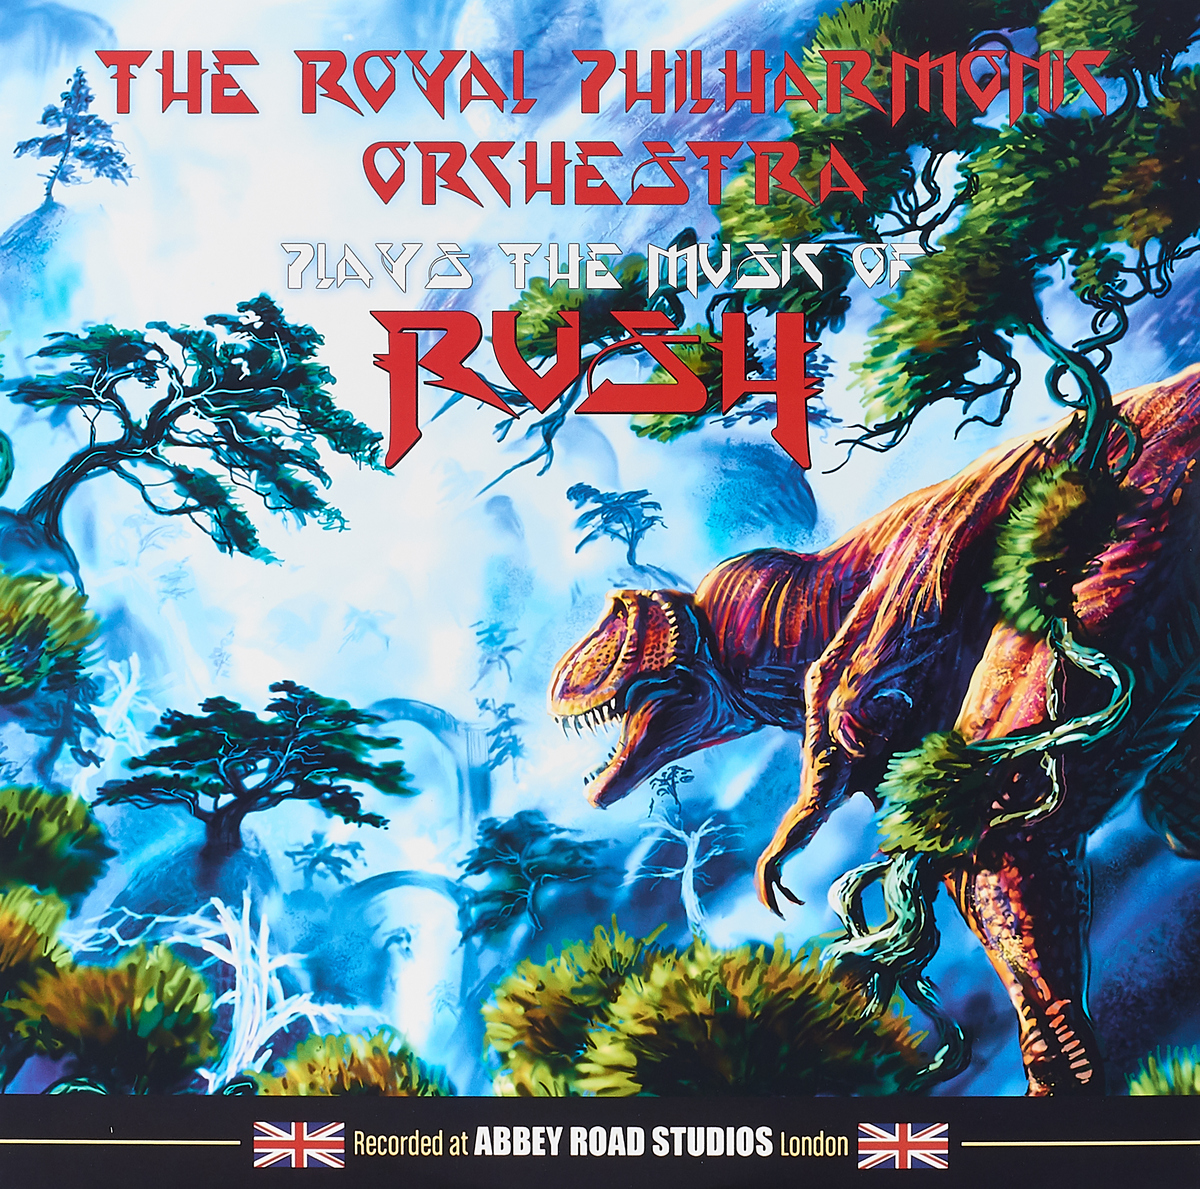 The Royal Philharmonic Orchestra The Royal Philharmonic Orchestra Plays The Music Of Rush LP